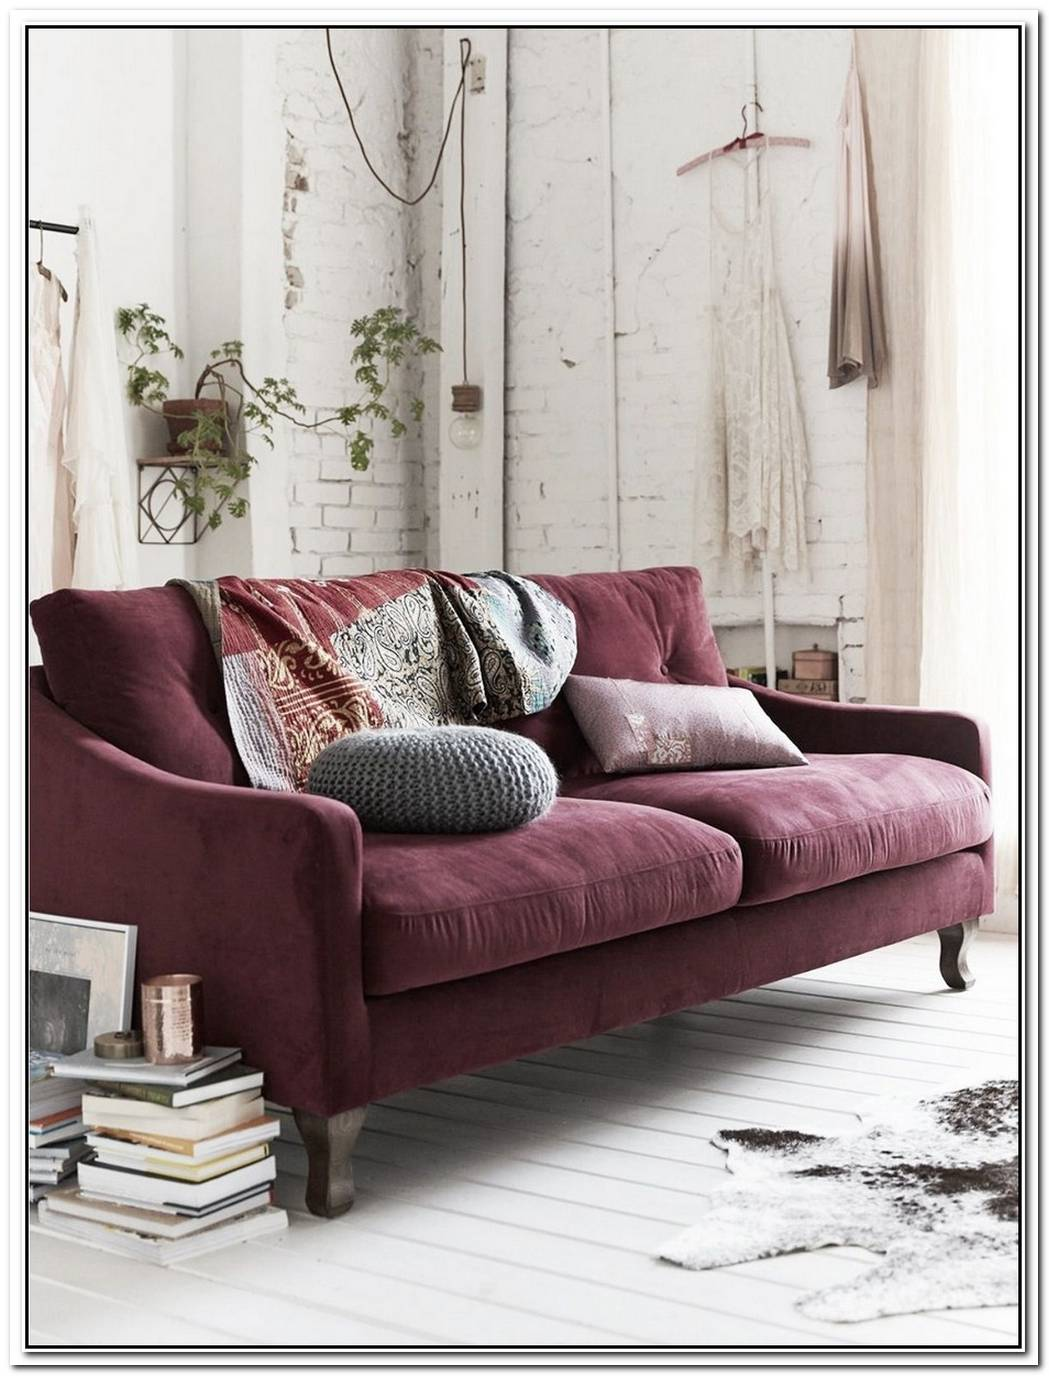 Decorating With Color Shop Plum And Wine Decorating Ideas For A Cozy Nest